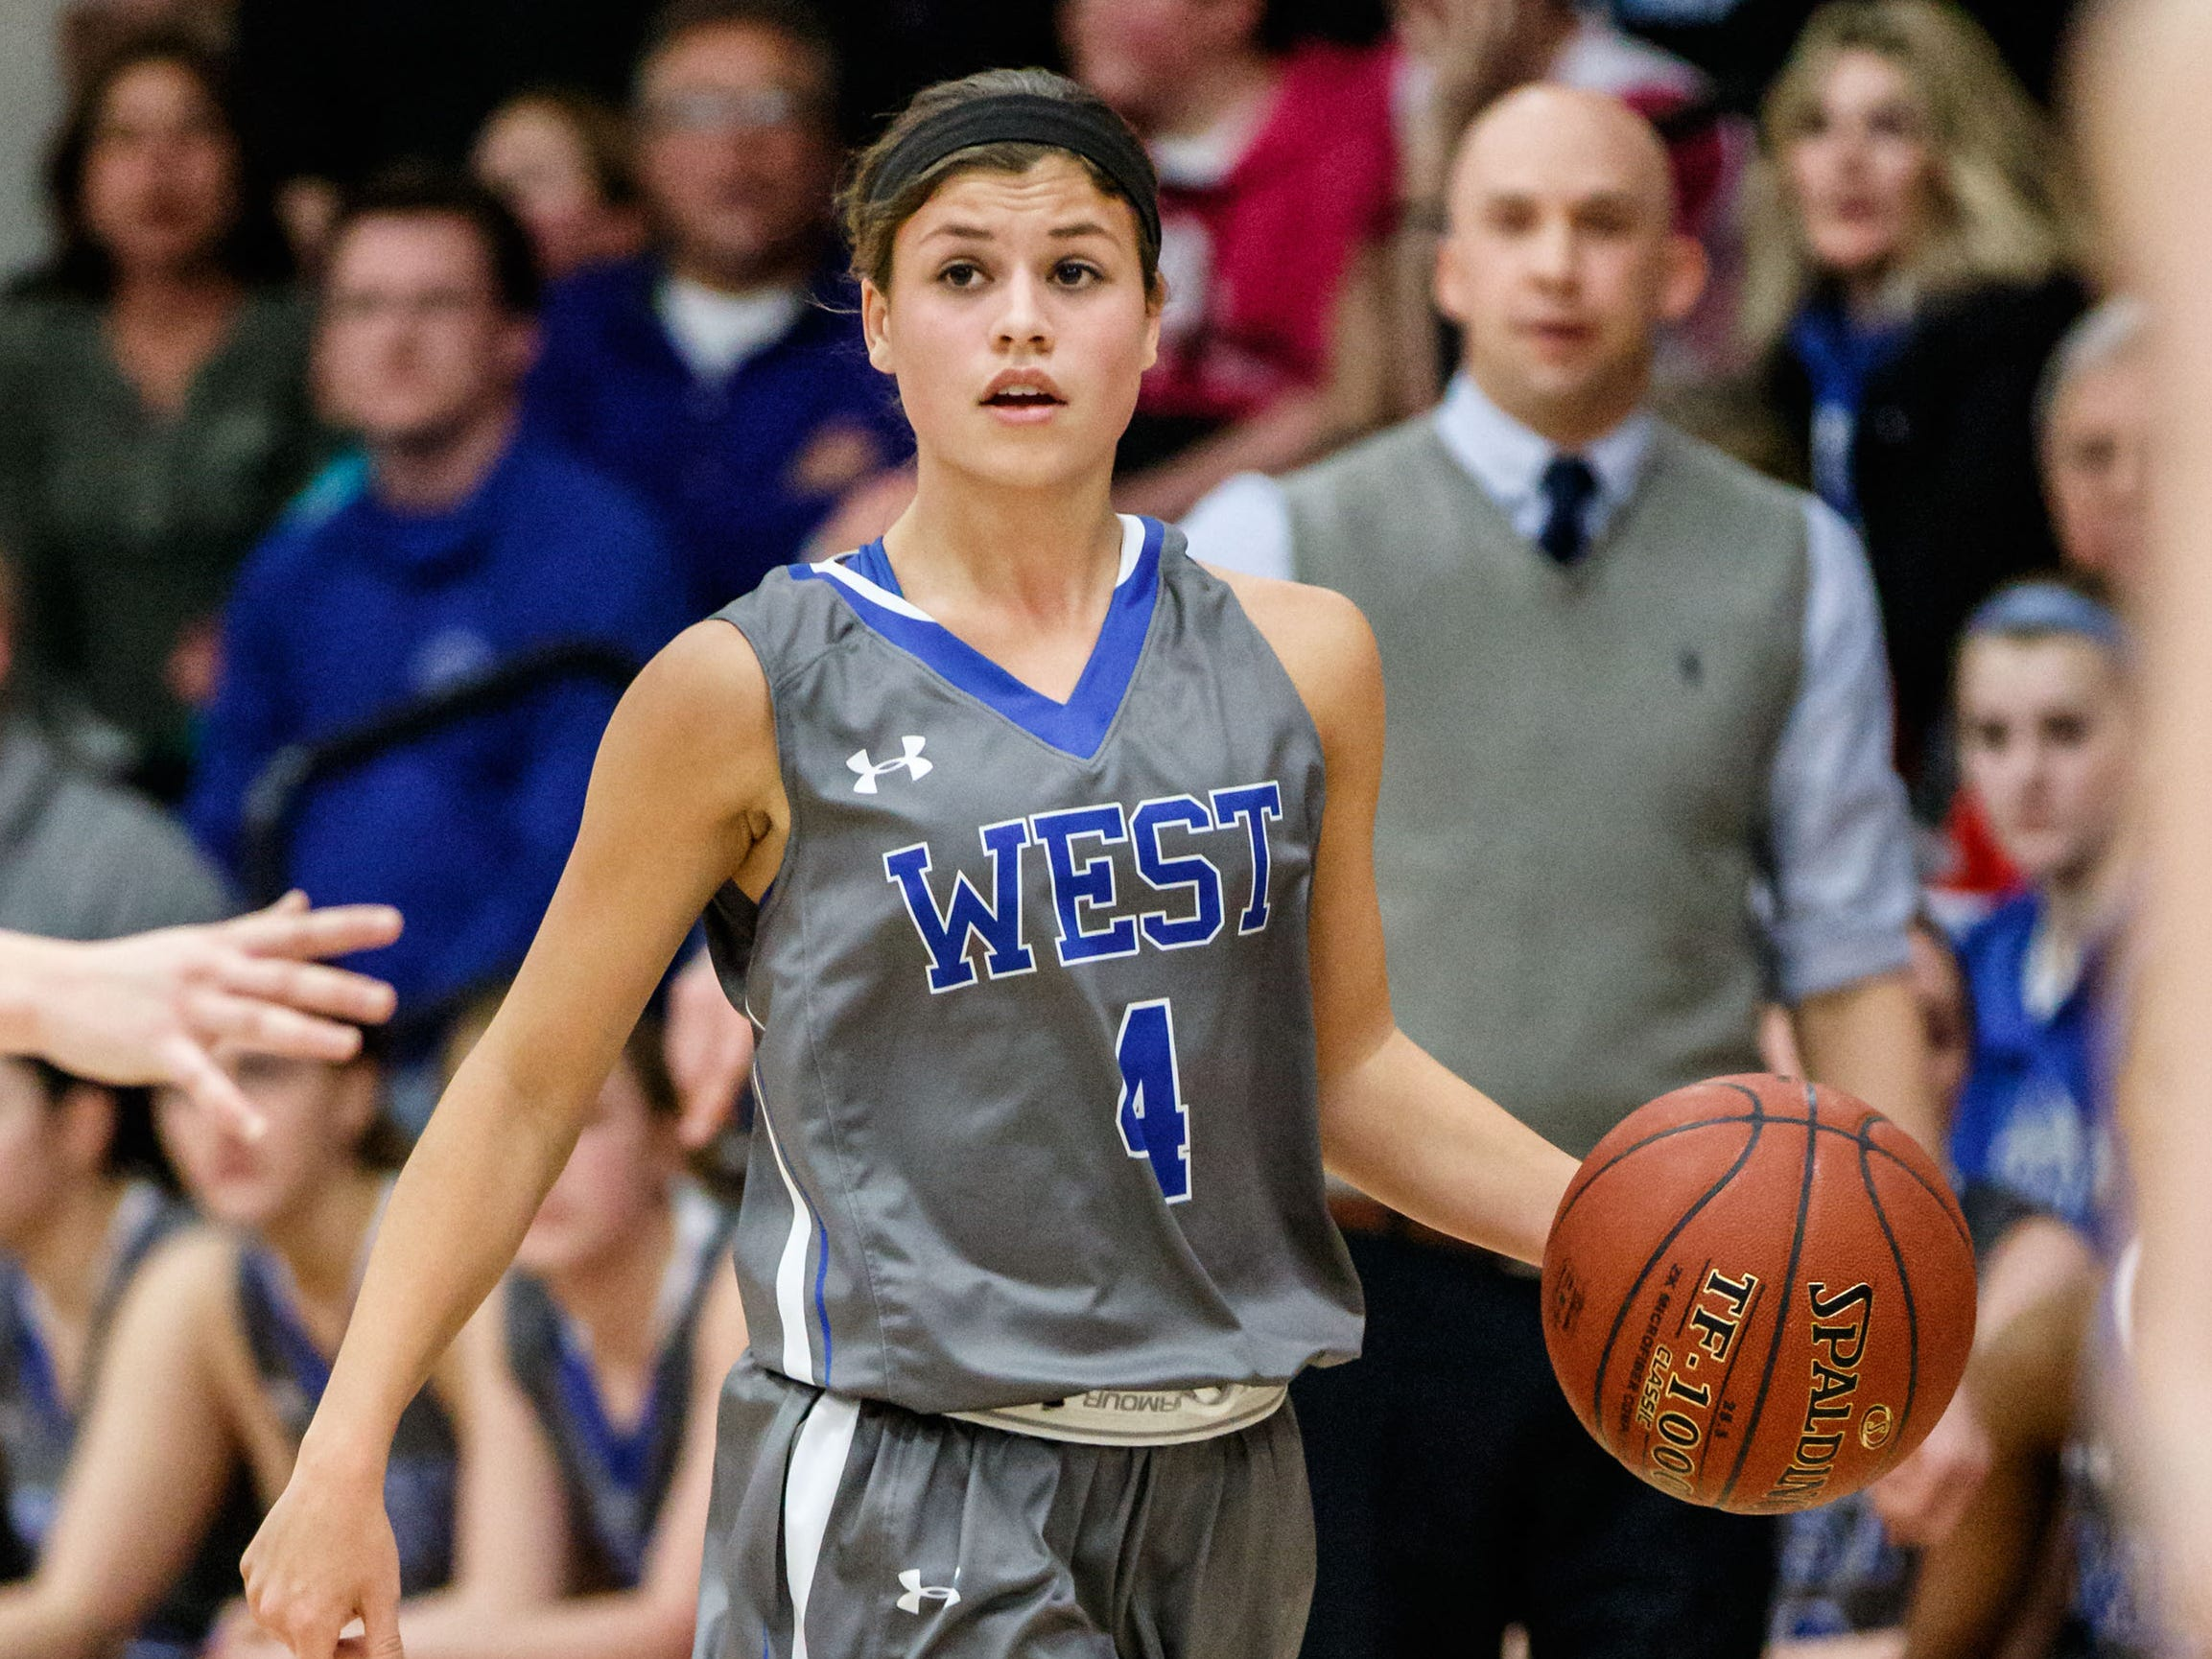 Waukesha West junior Dani Rhodes brings the ball  up the court during the game at Arrowhead on Feb. 6, 2015.